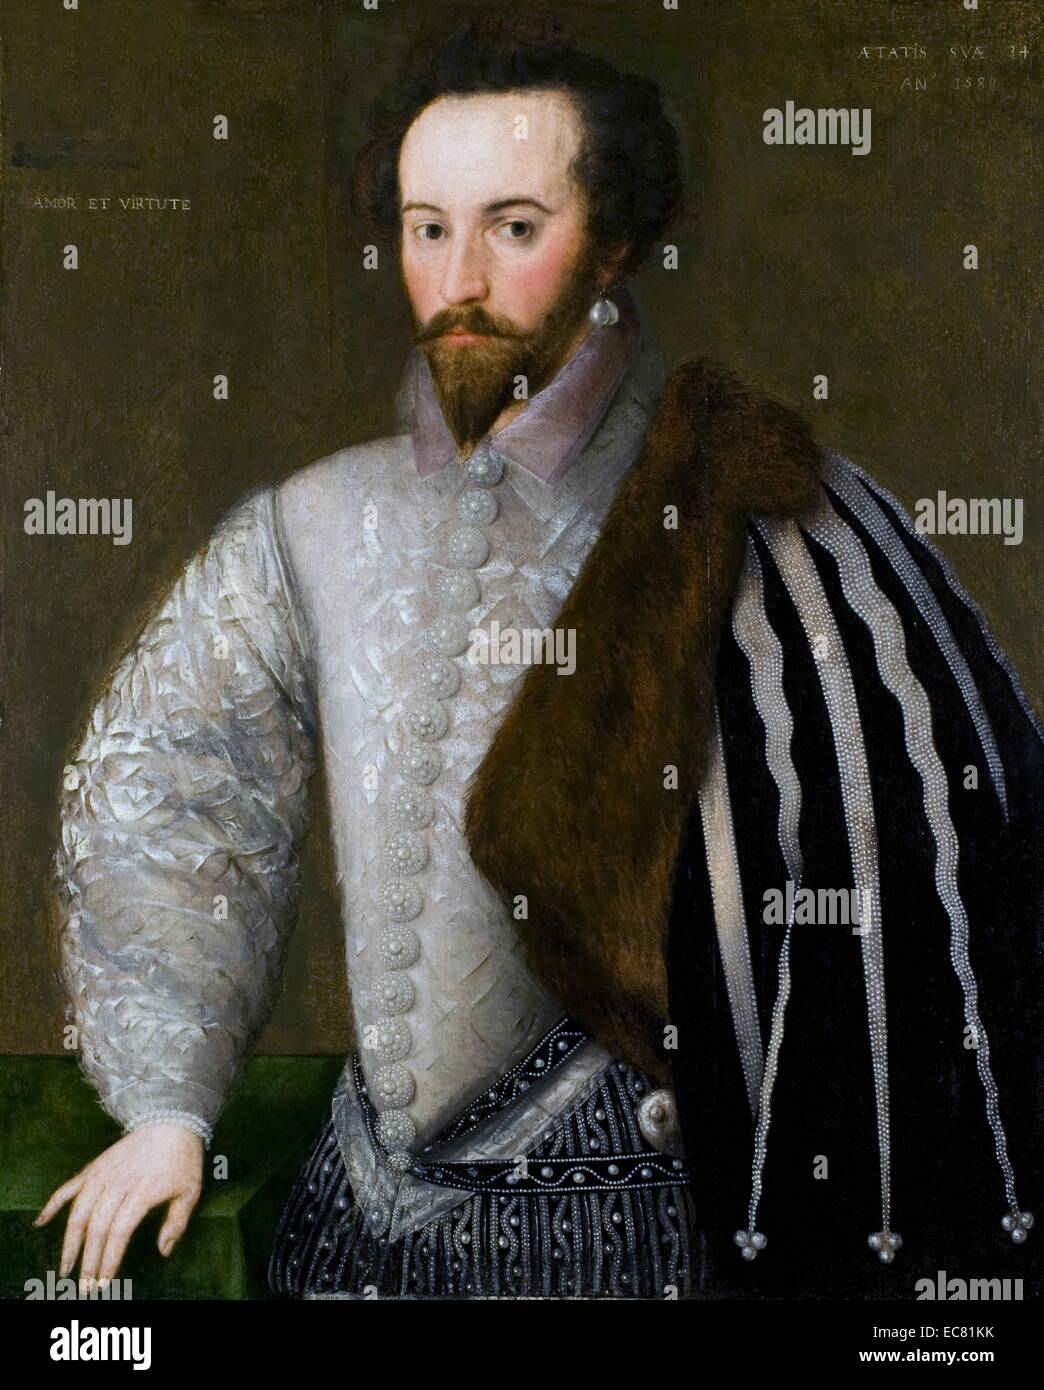 Portrait of Sir Walter Raleigh - Stock Image